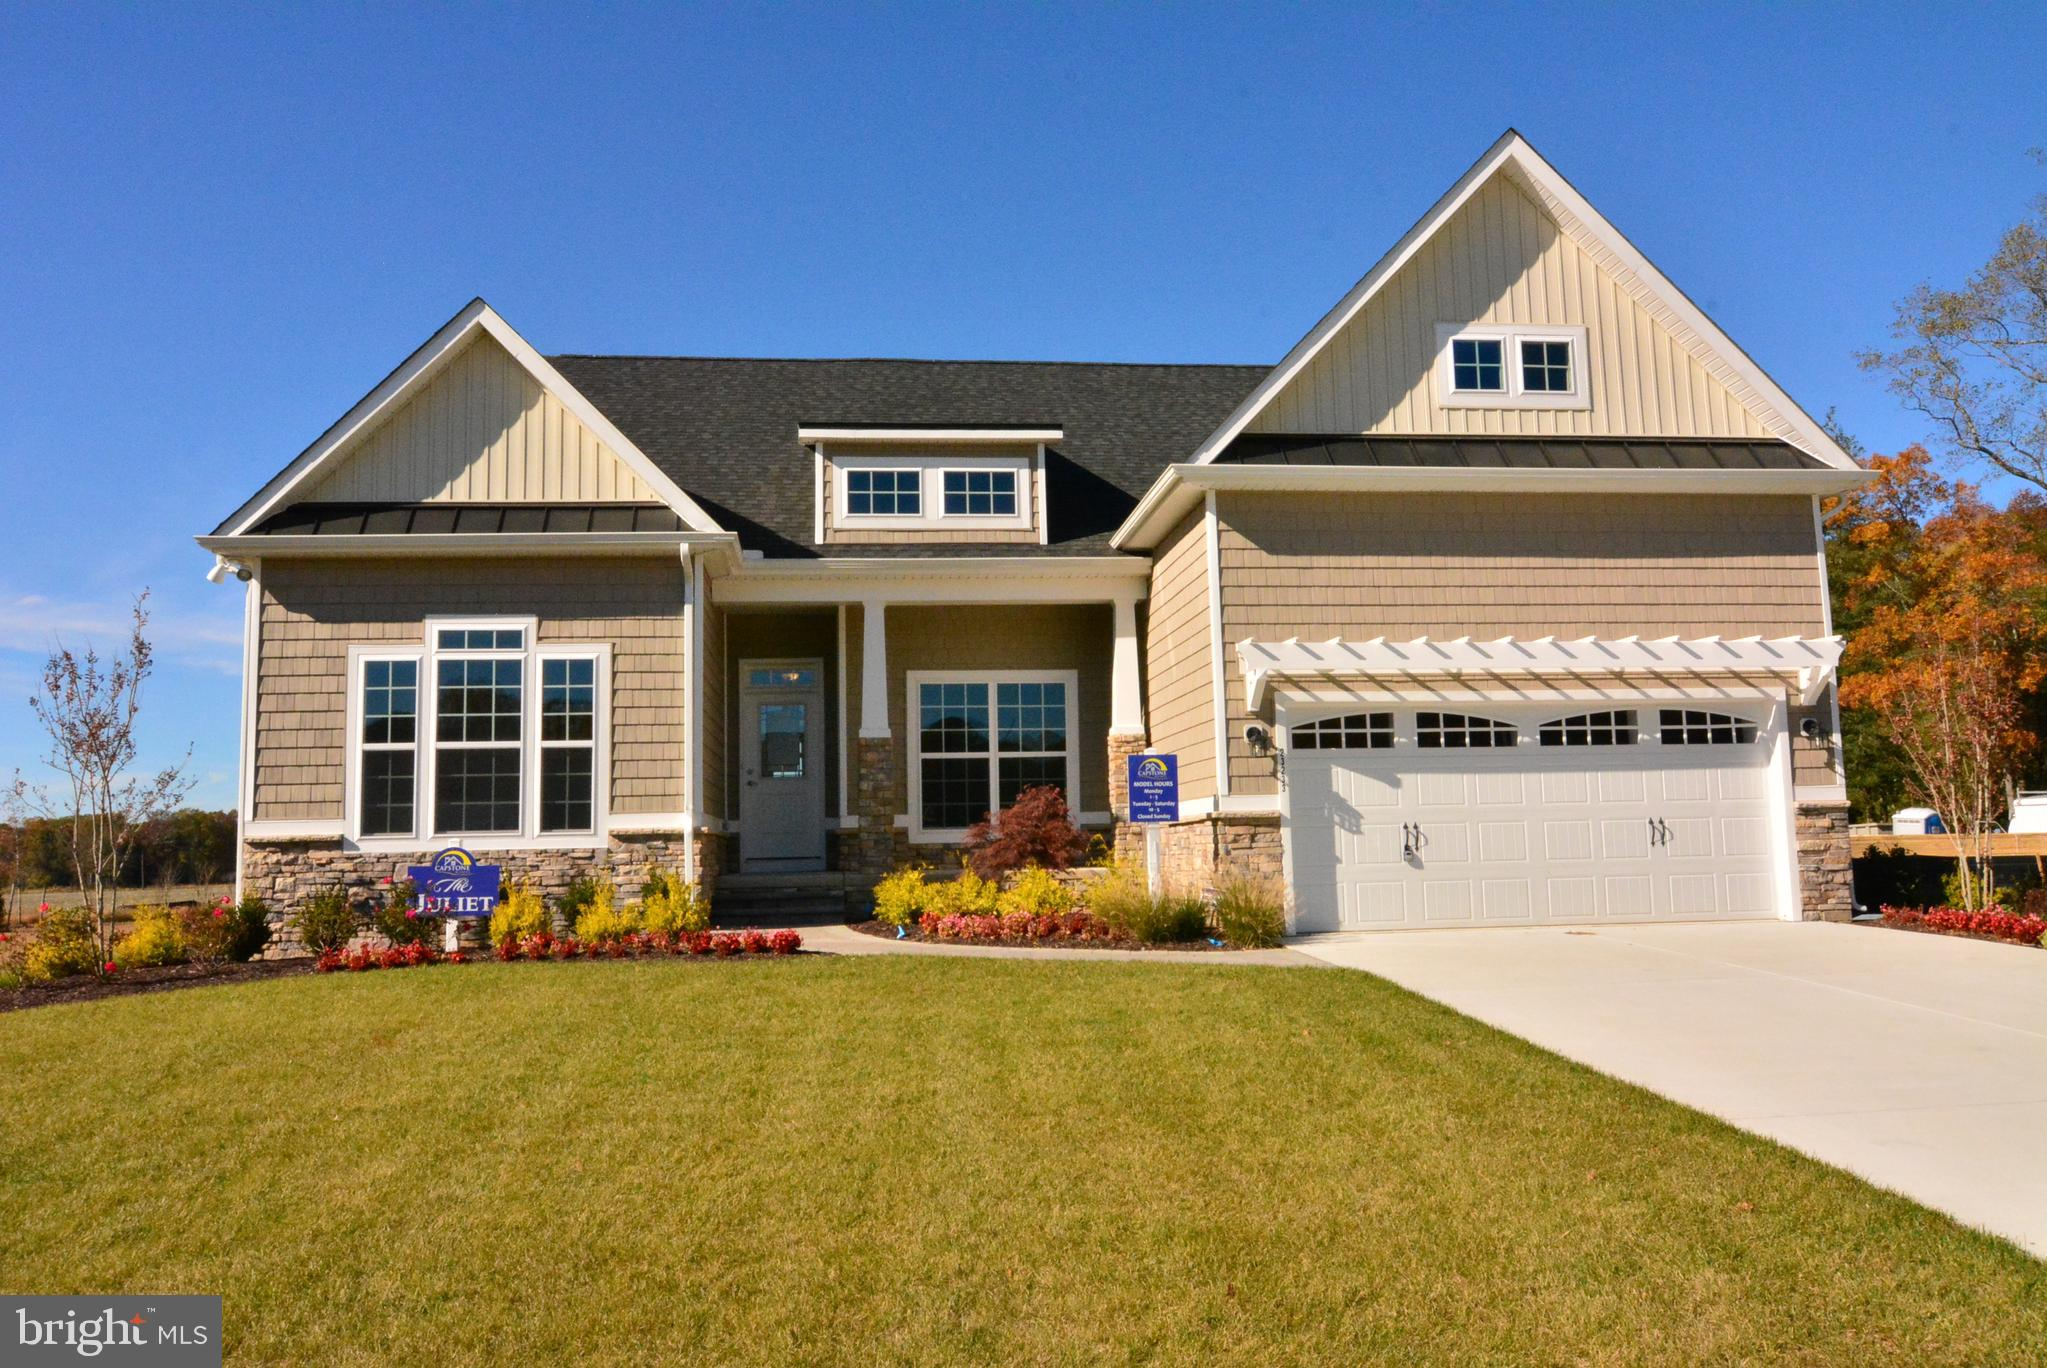 Welcome to Greenbank Estates, a community filled with 3/4 acre homesites in the Cape Henlopen School